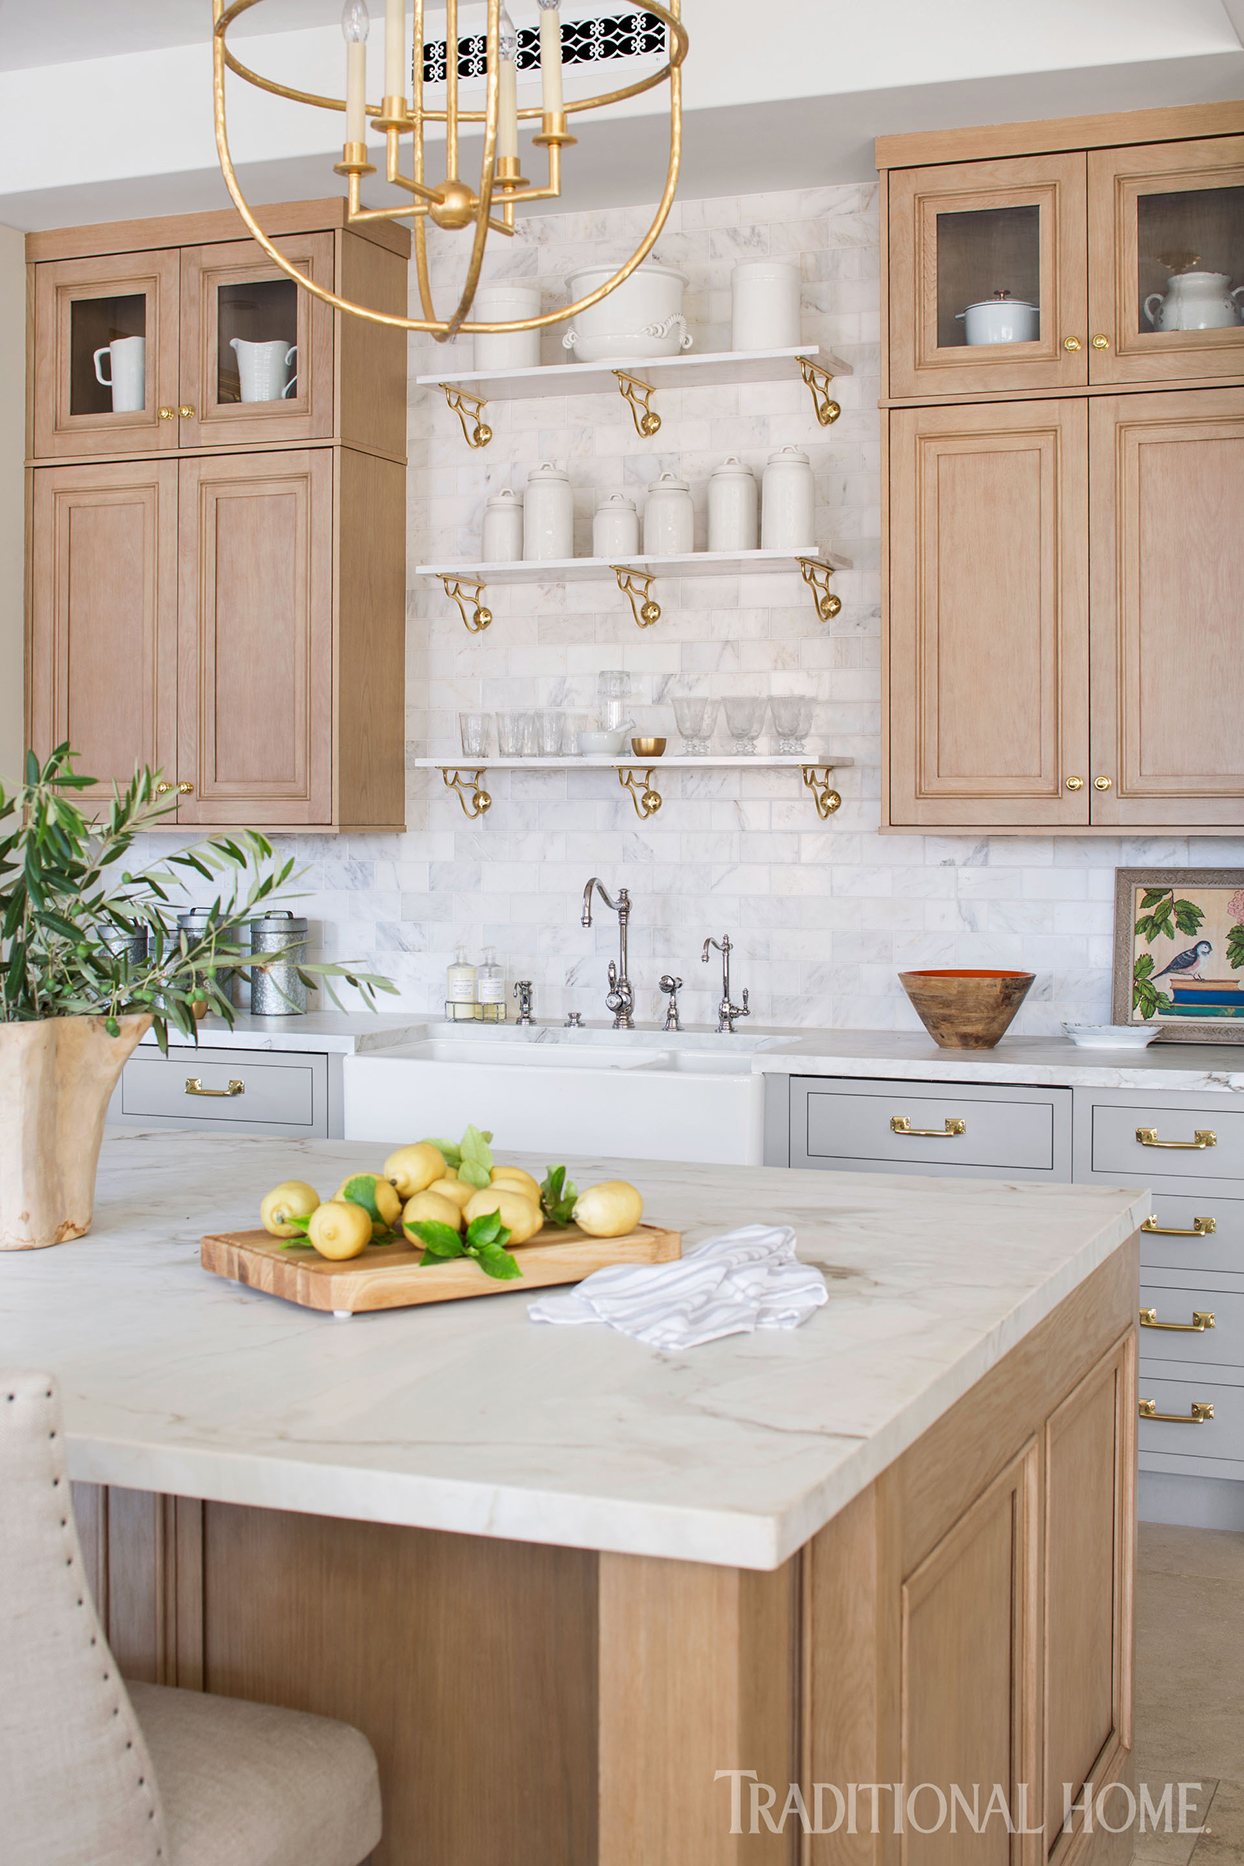 Kitchen with marble backsplash and counter